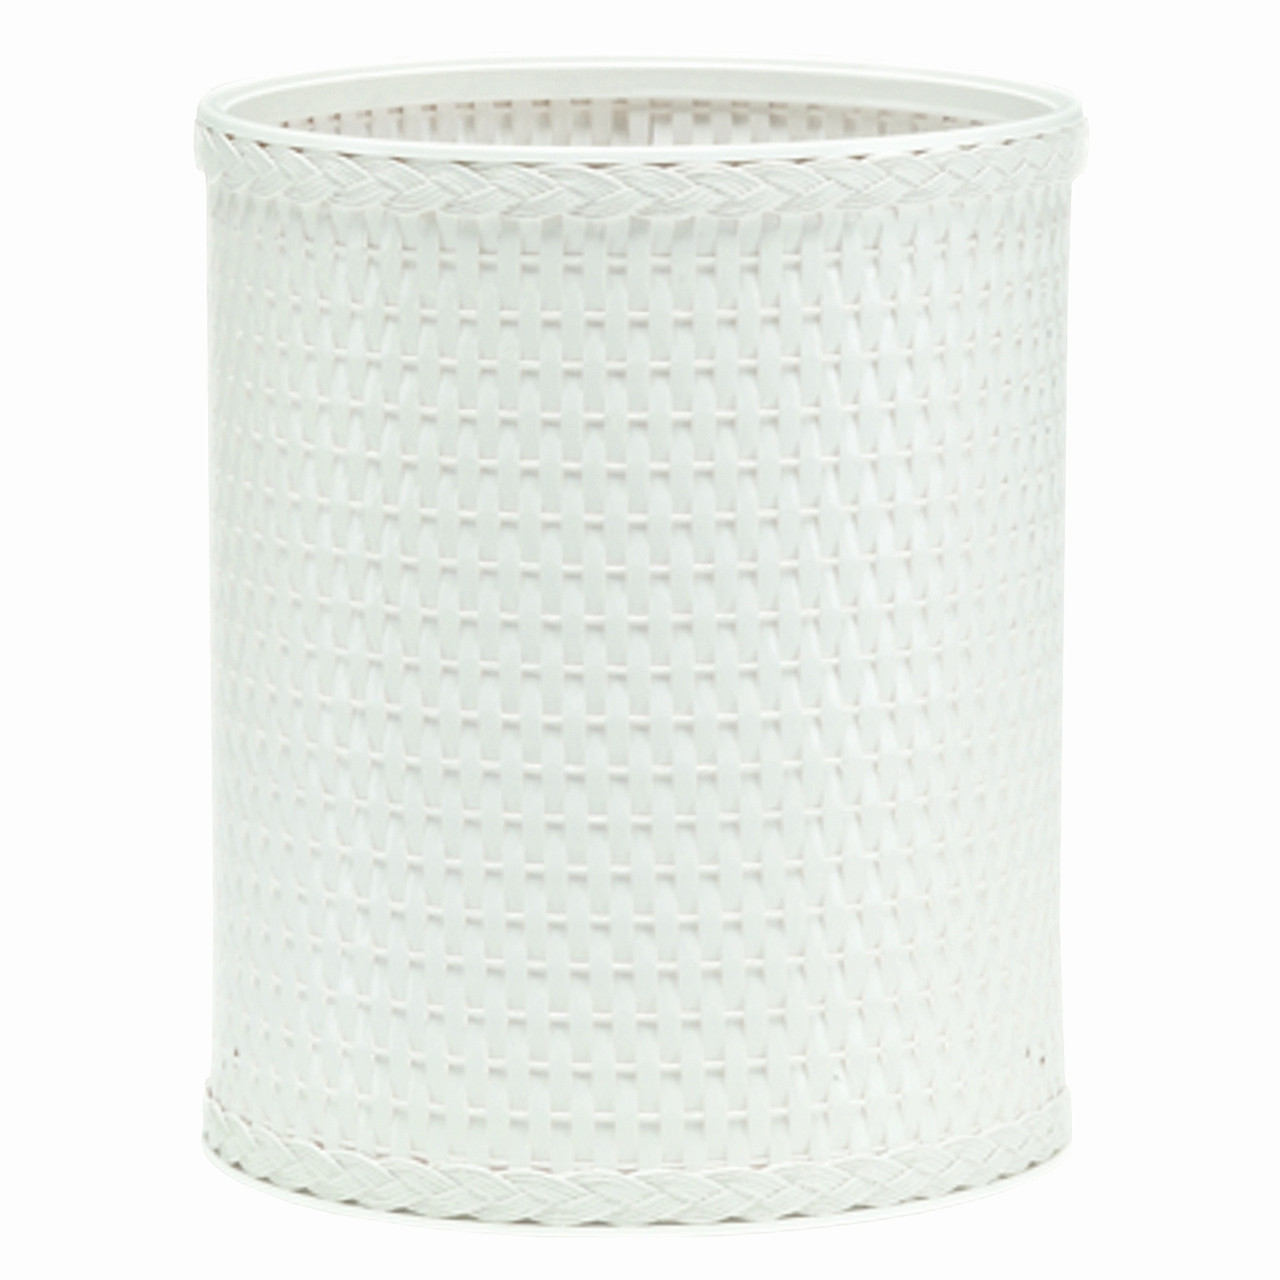 Chelsea Wicker Round Wastebasket White